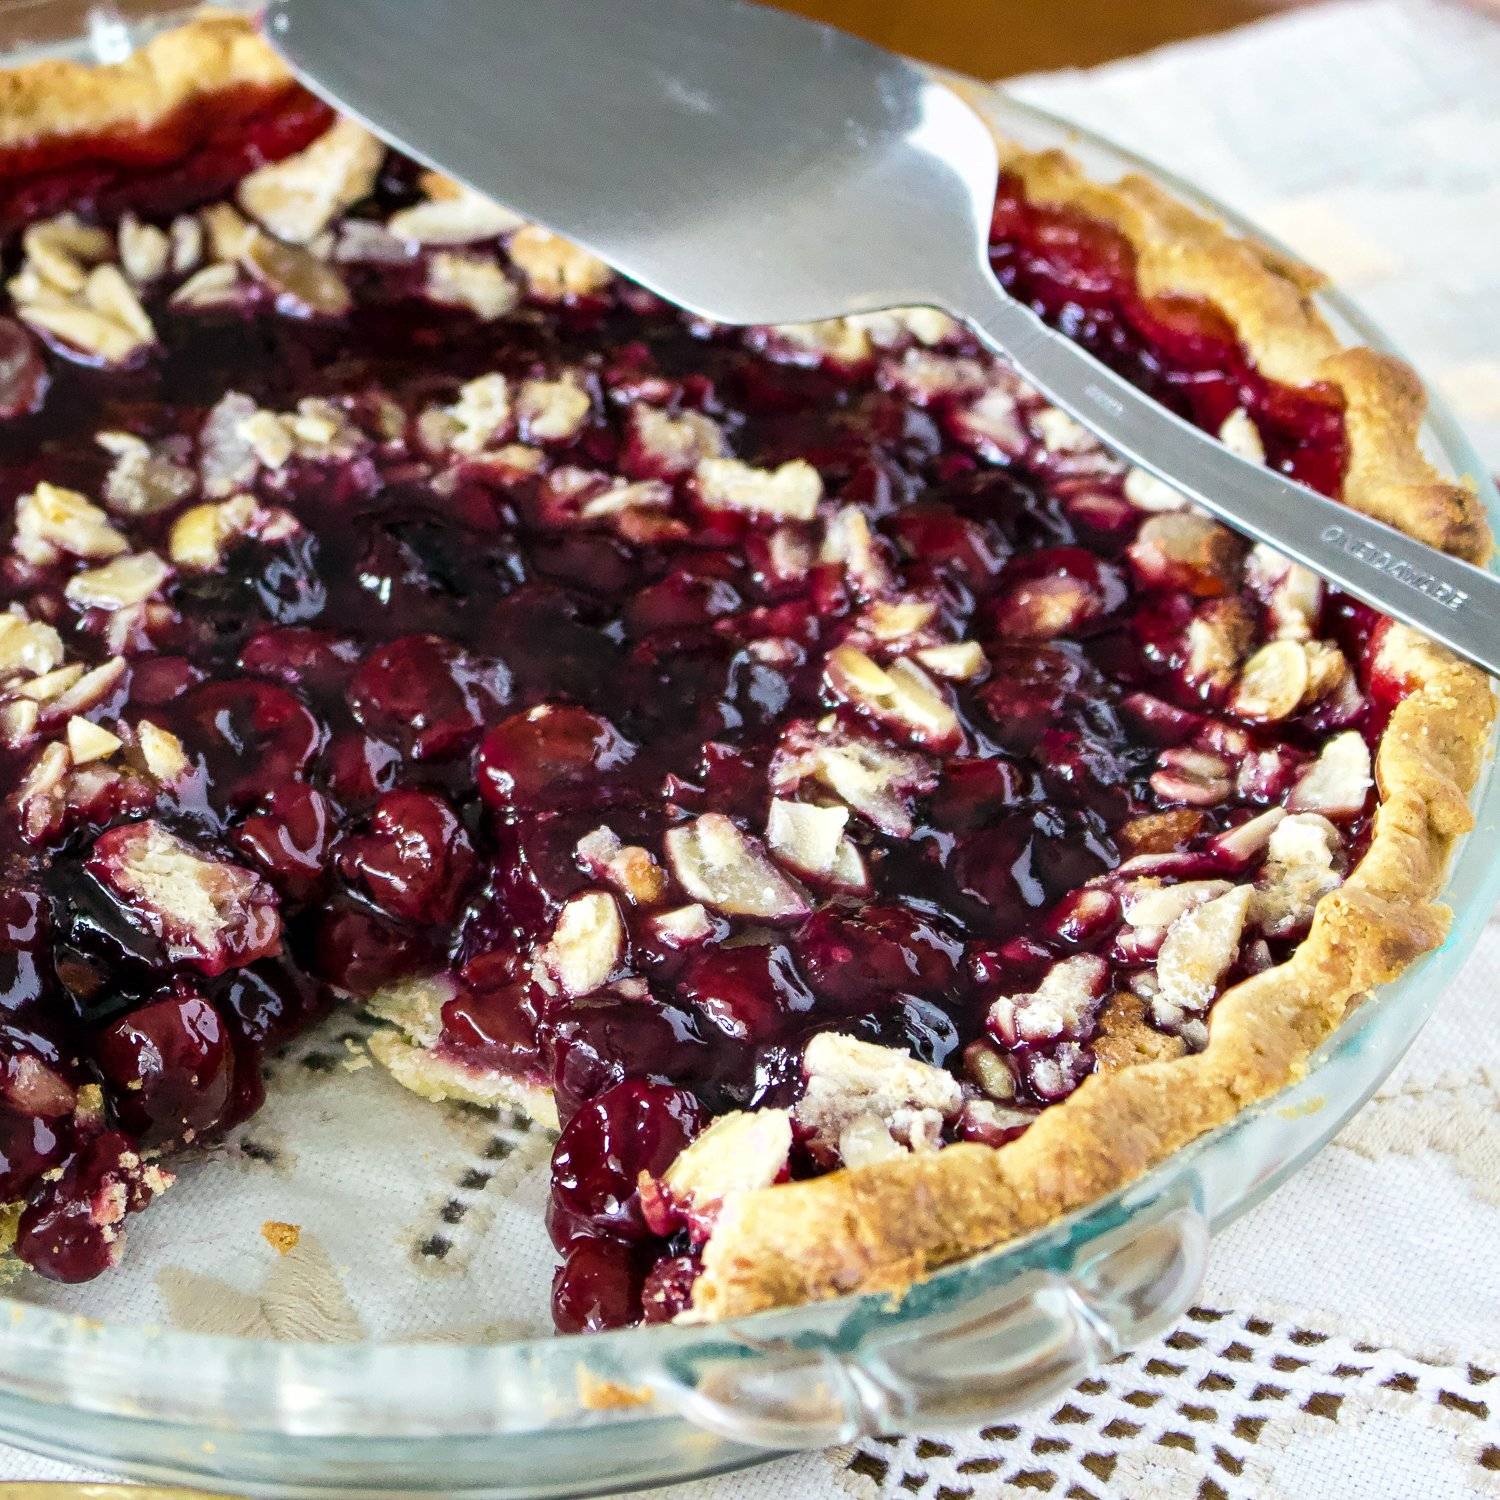 Best Sour Cherry Pie- in the glass baking pan with a serving spoon